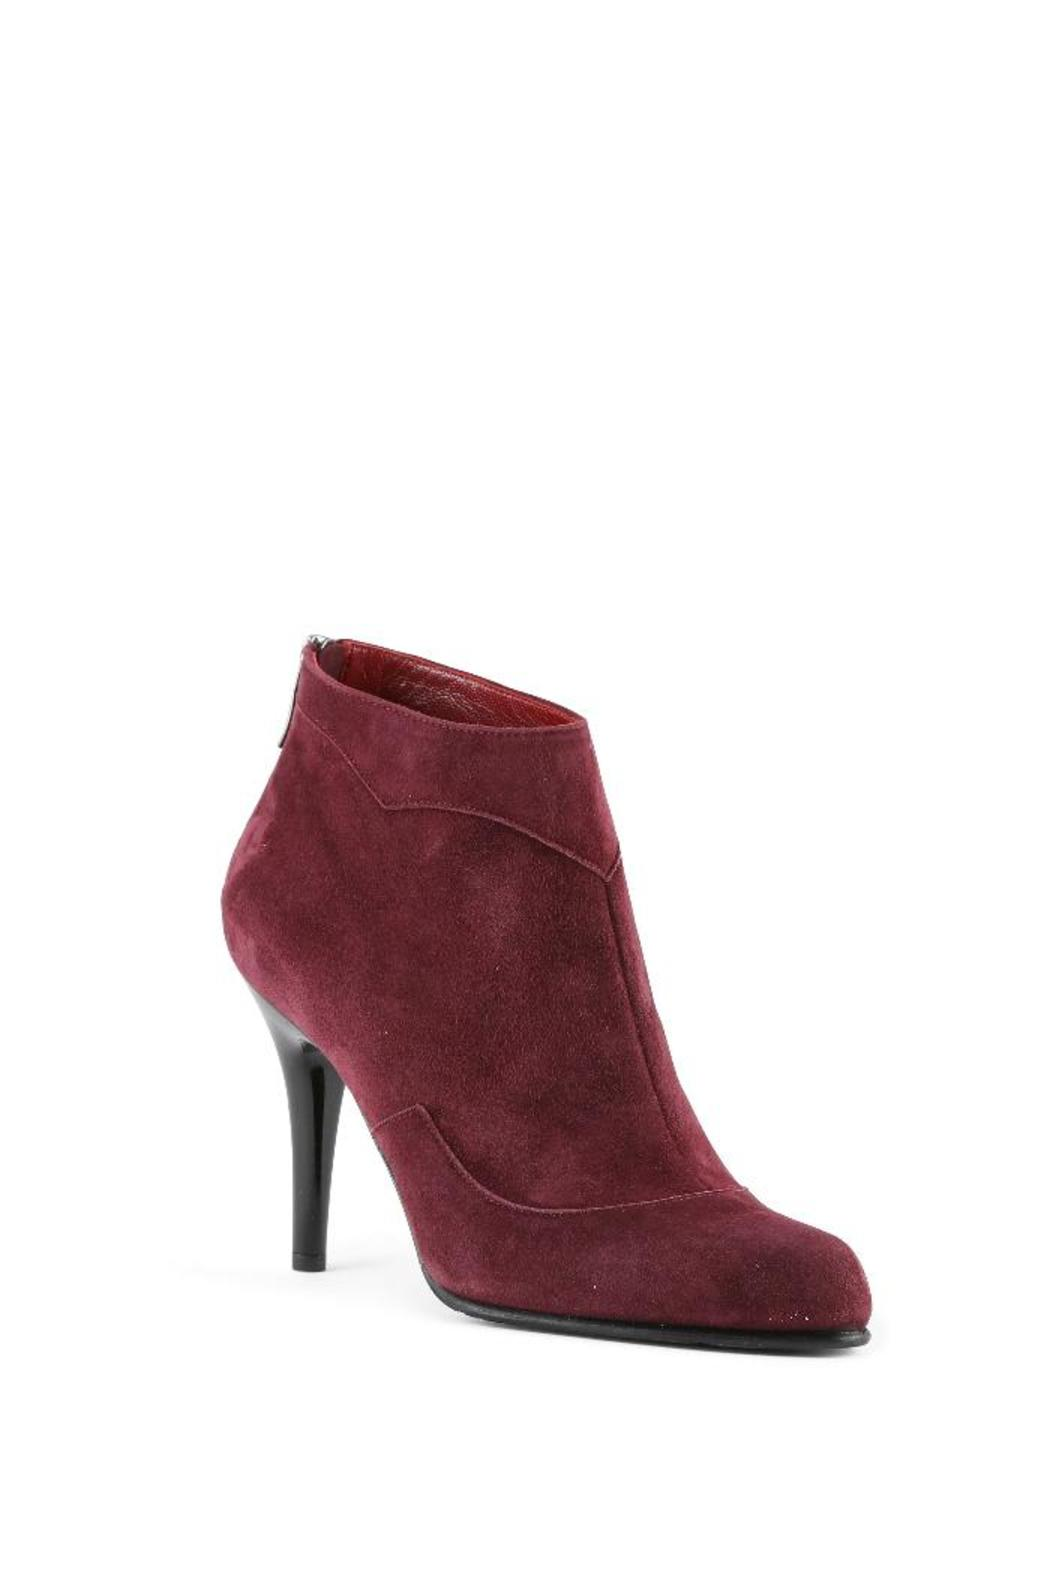 Amanda Jayne Burgundy Suede Bootie From Monmouthshire By